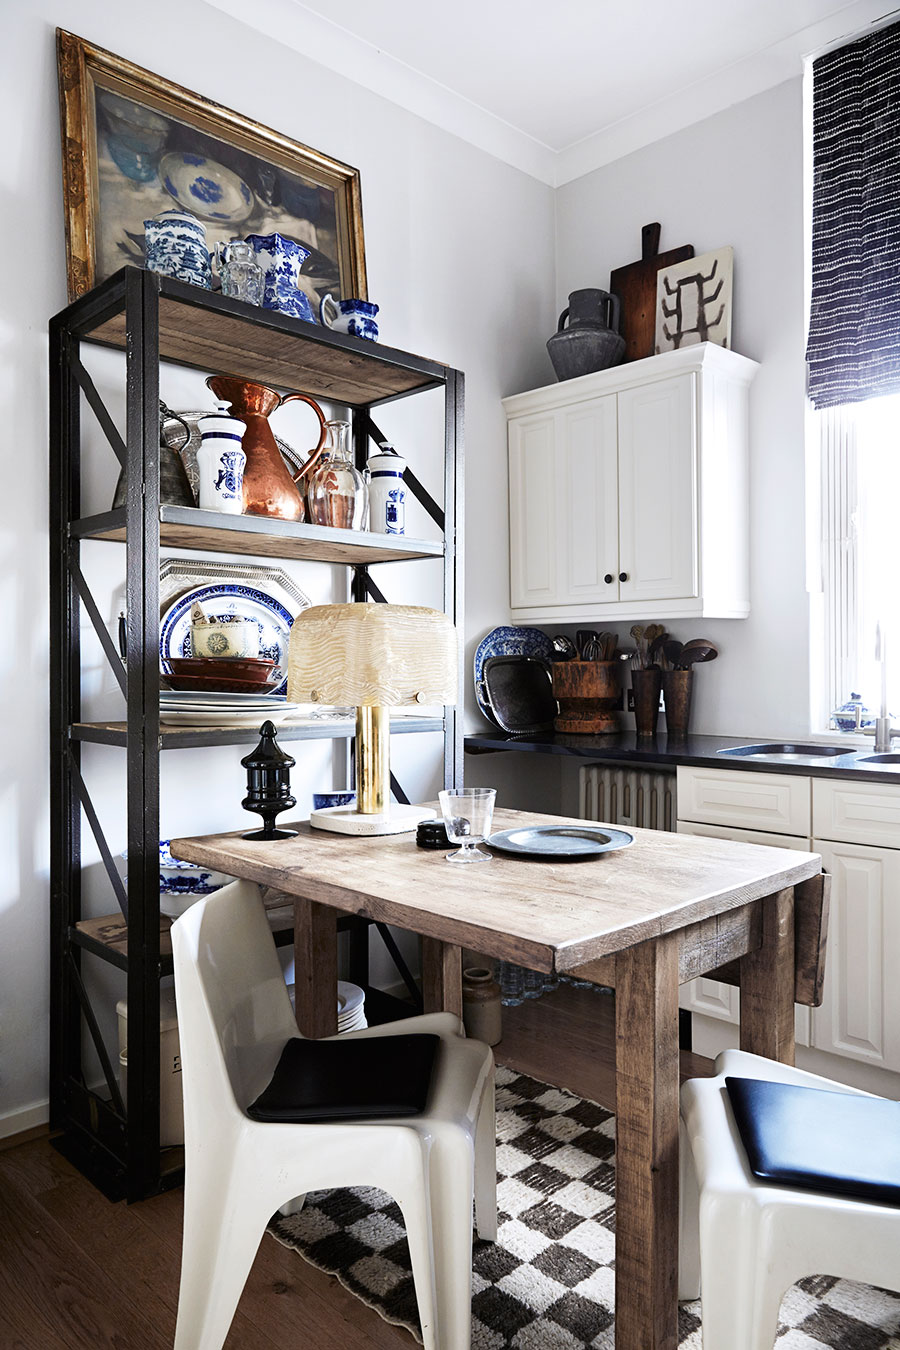 Amazing boho chic interior in london by malene birger for London kitchen decor